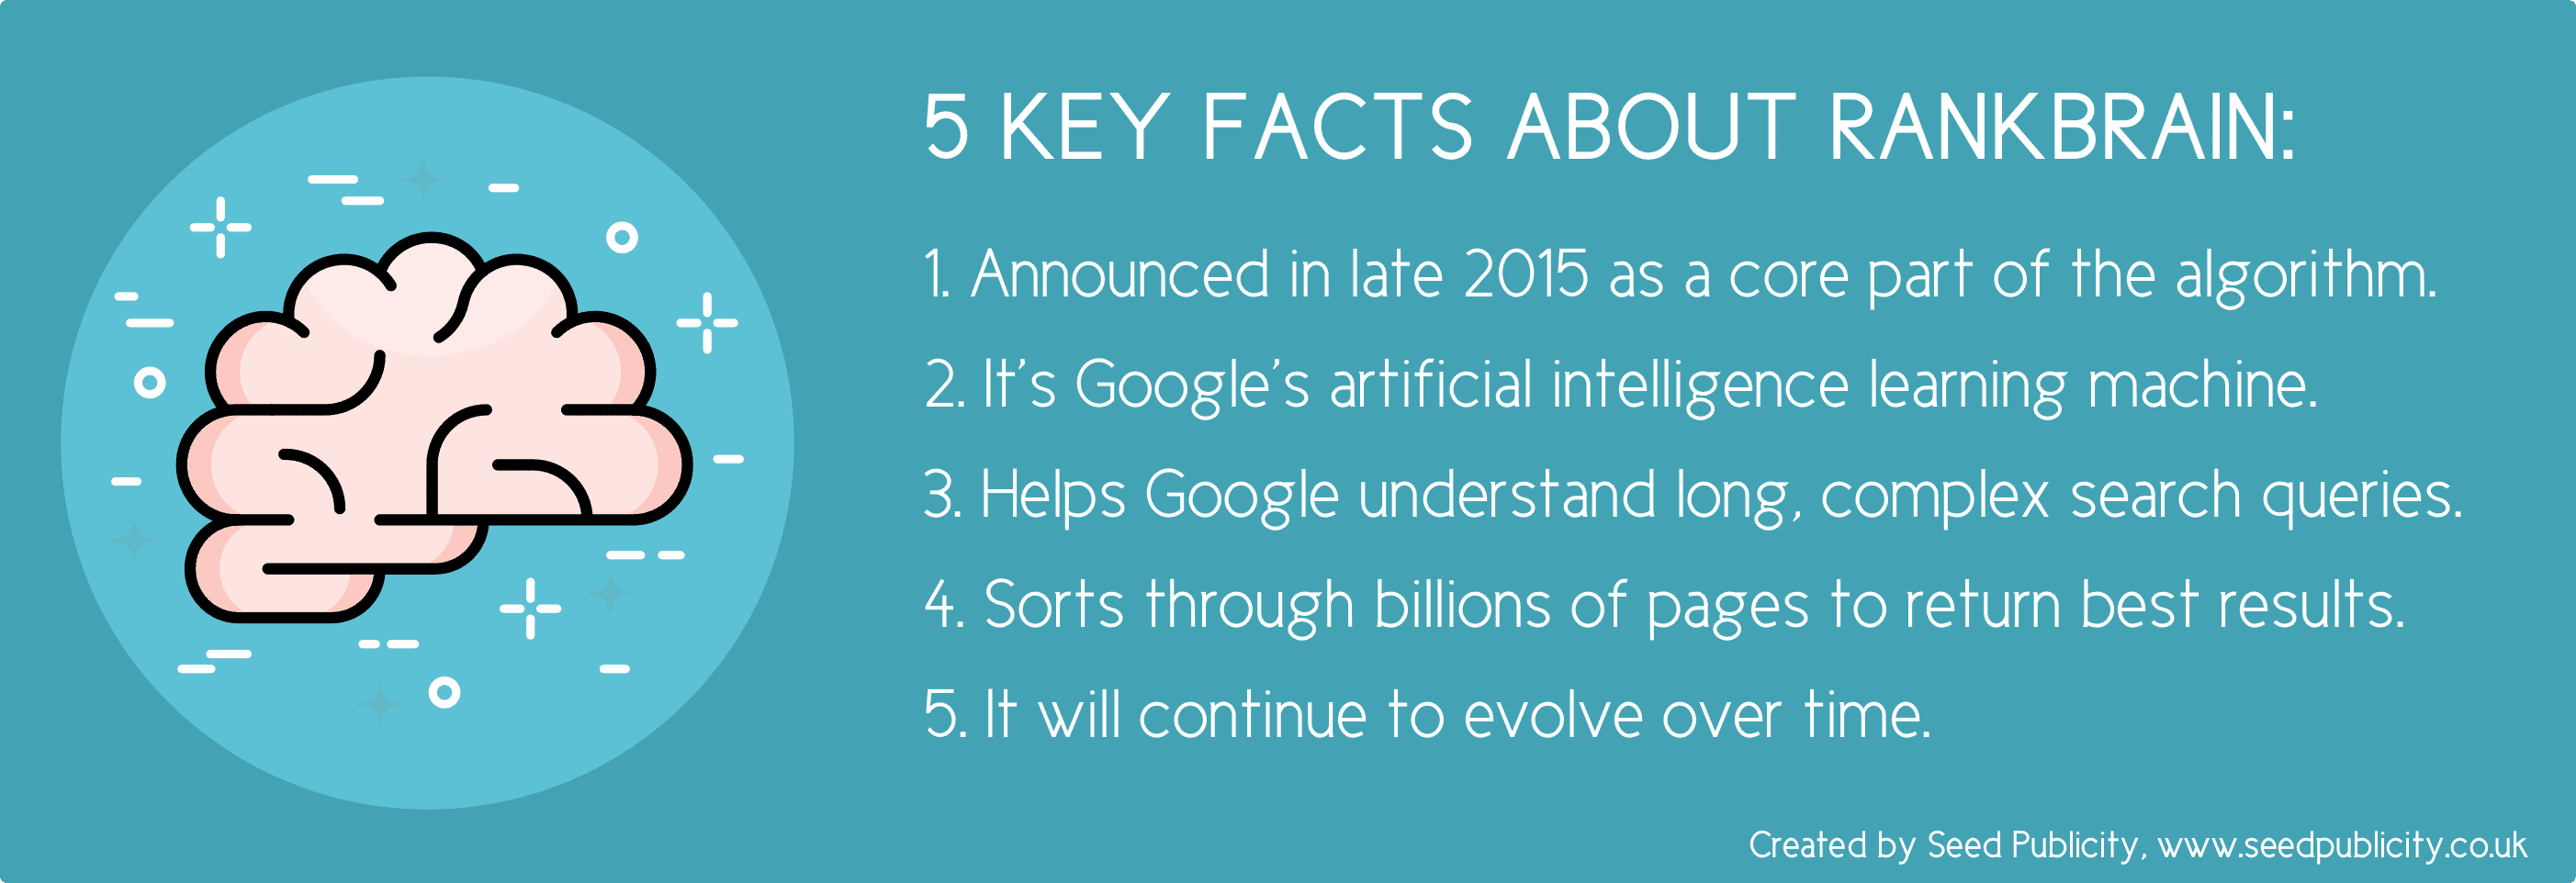 google-rankbrain-update-explained-5-key-facts